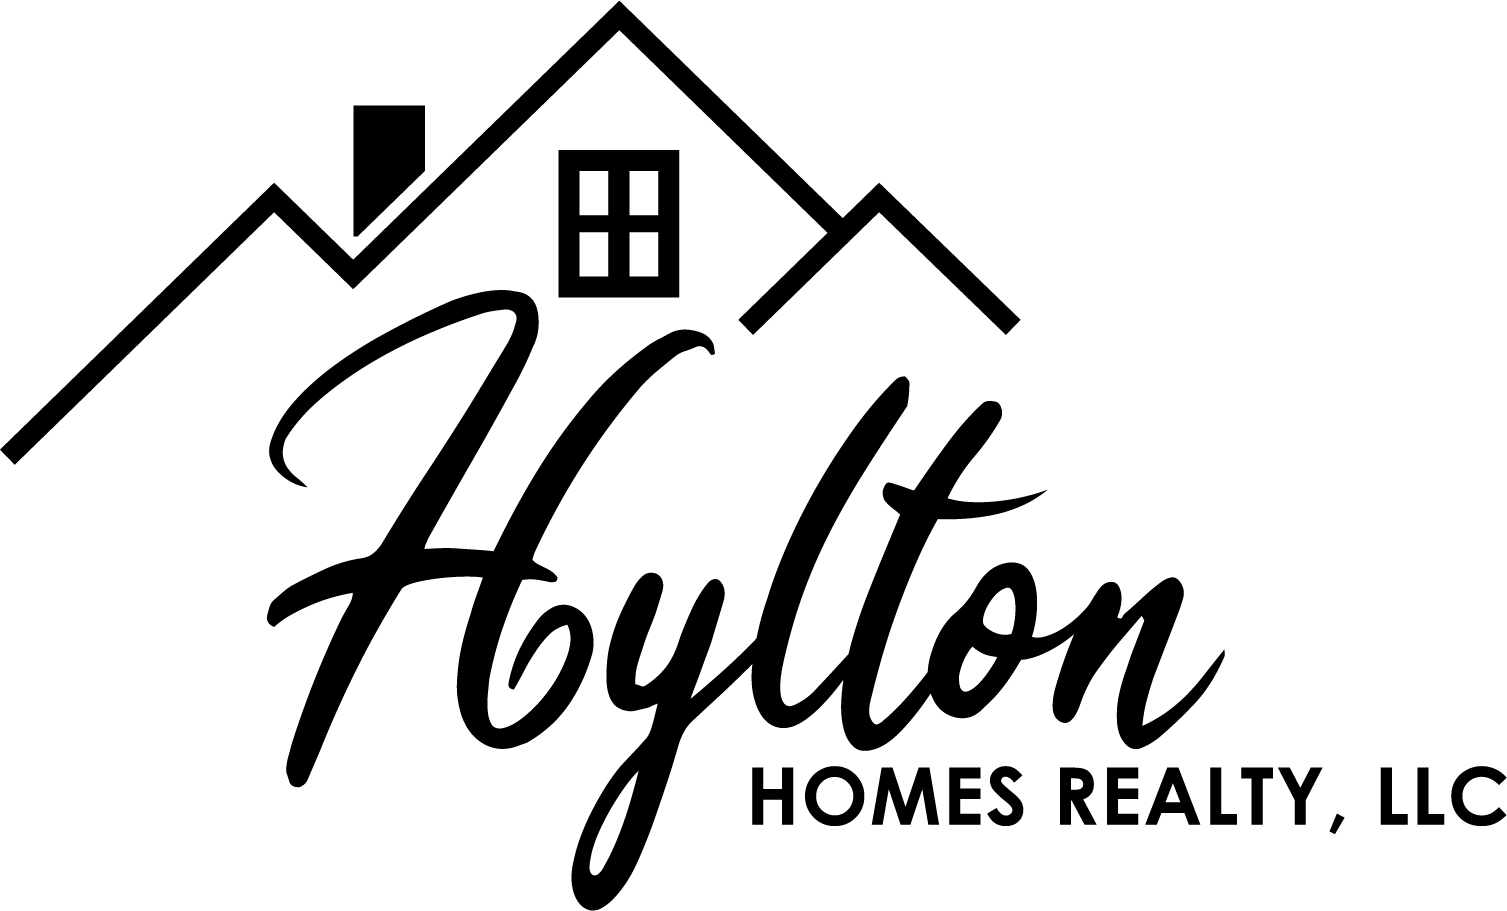 Hylton Homes Realty - Home